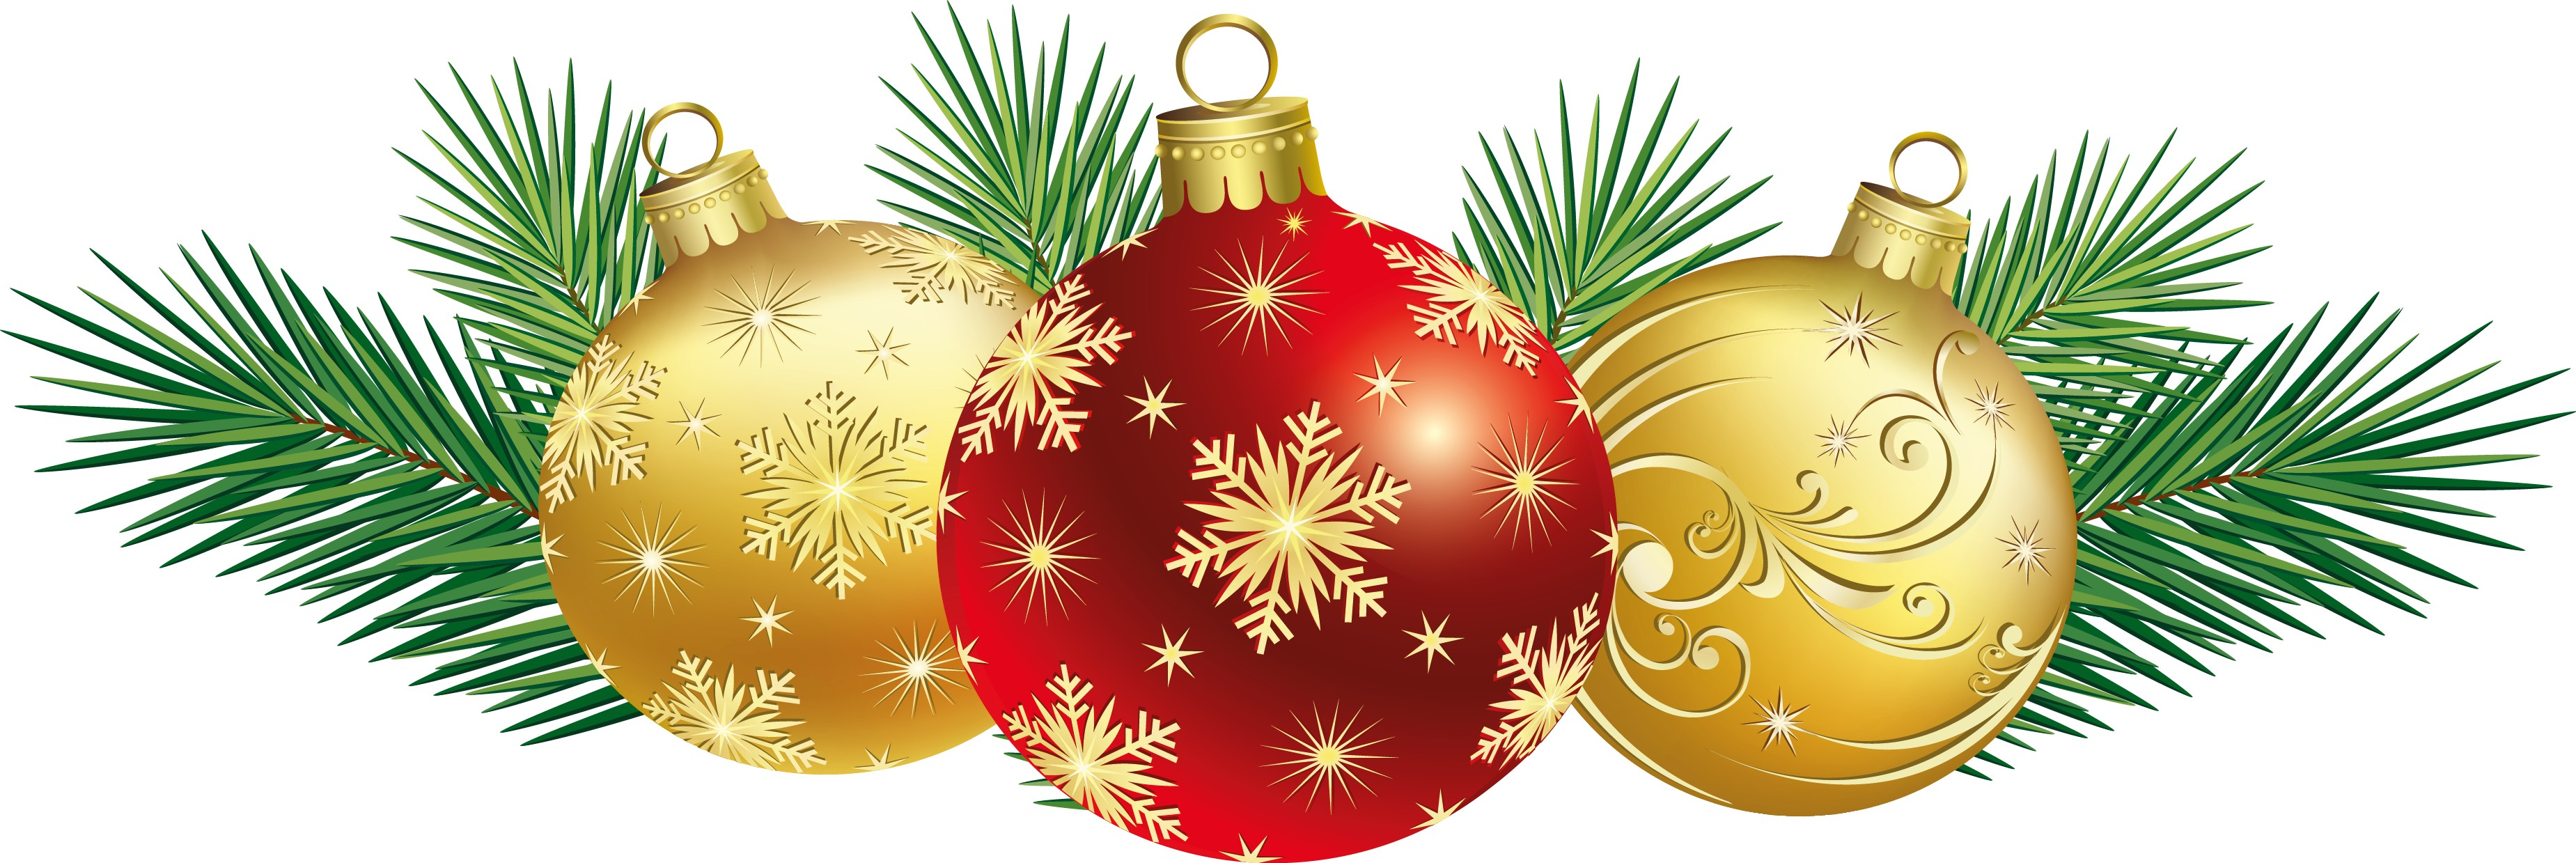 Christmas_Balls_Decoration_PNG_Clipart.png